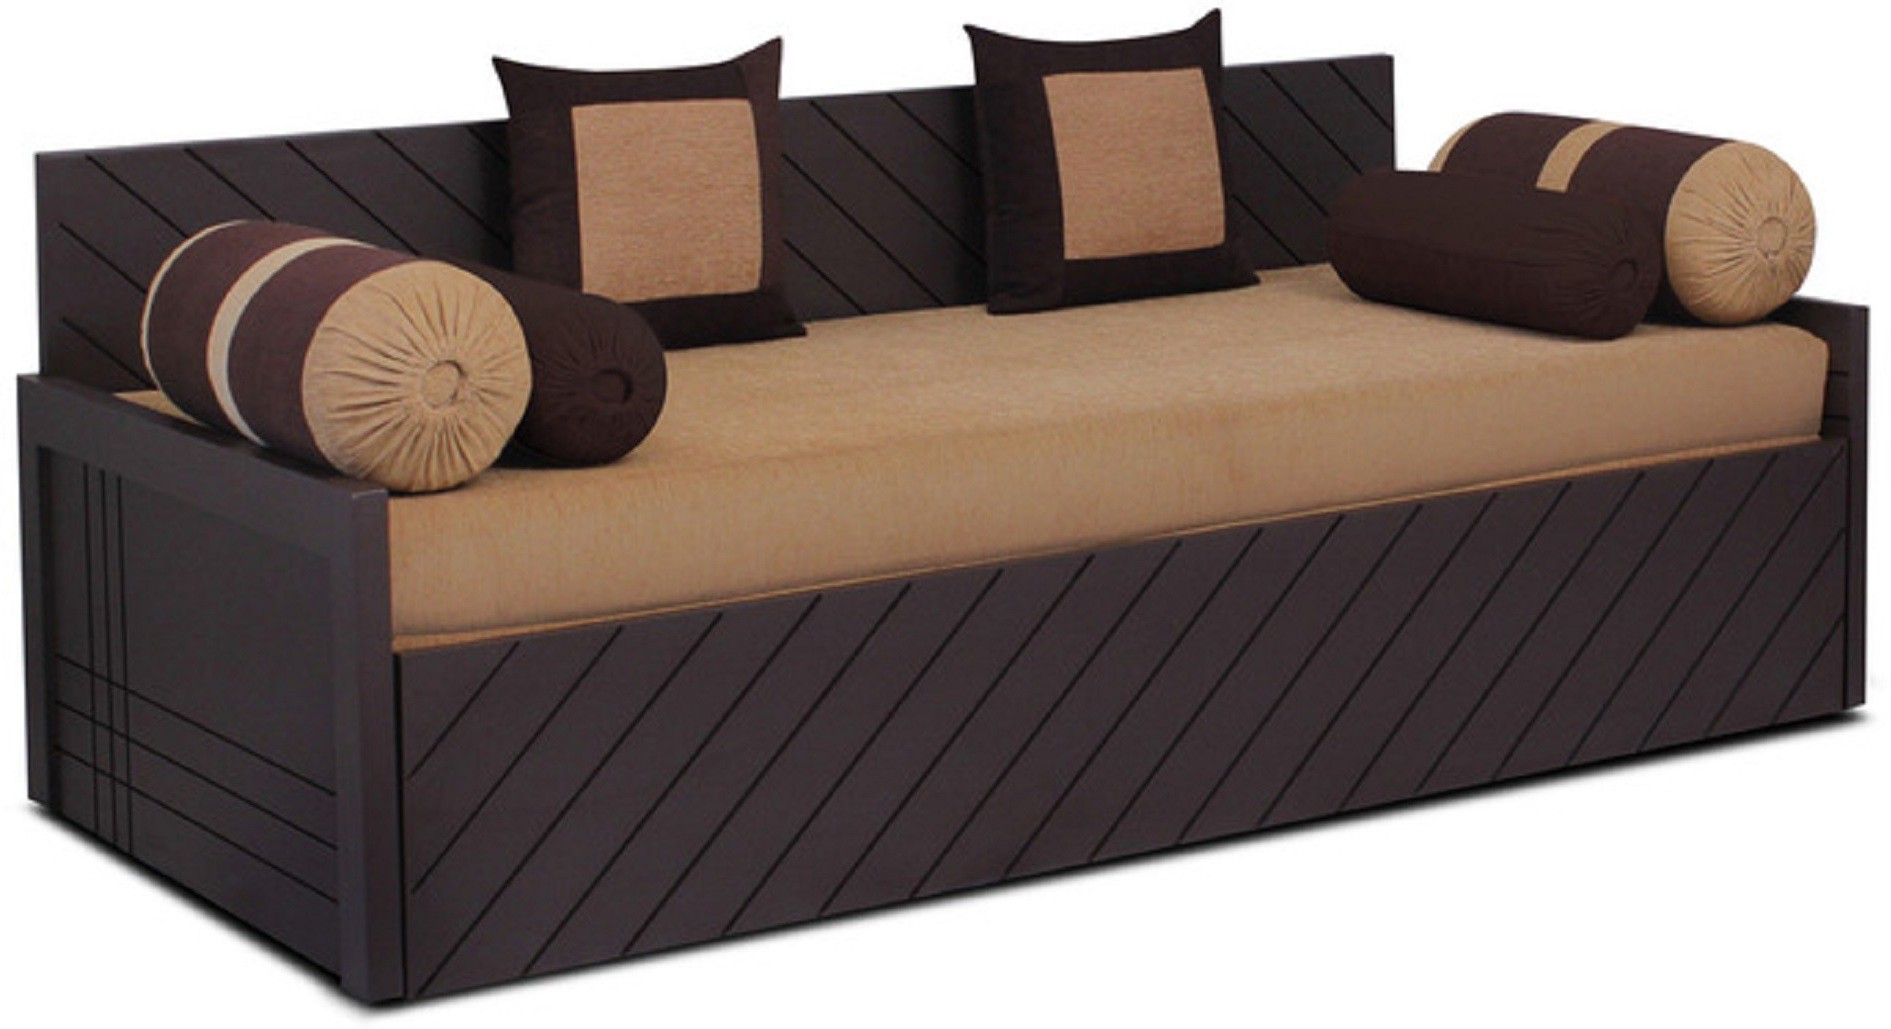 View Auspicious Home Kaiden (2 Pillows, 4 Bolsters) Double Fabric Sofa Bed(Finish Color - Brown Mechanism Type - Pull Out) Furniture (Auspicious Home)